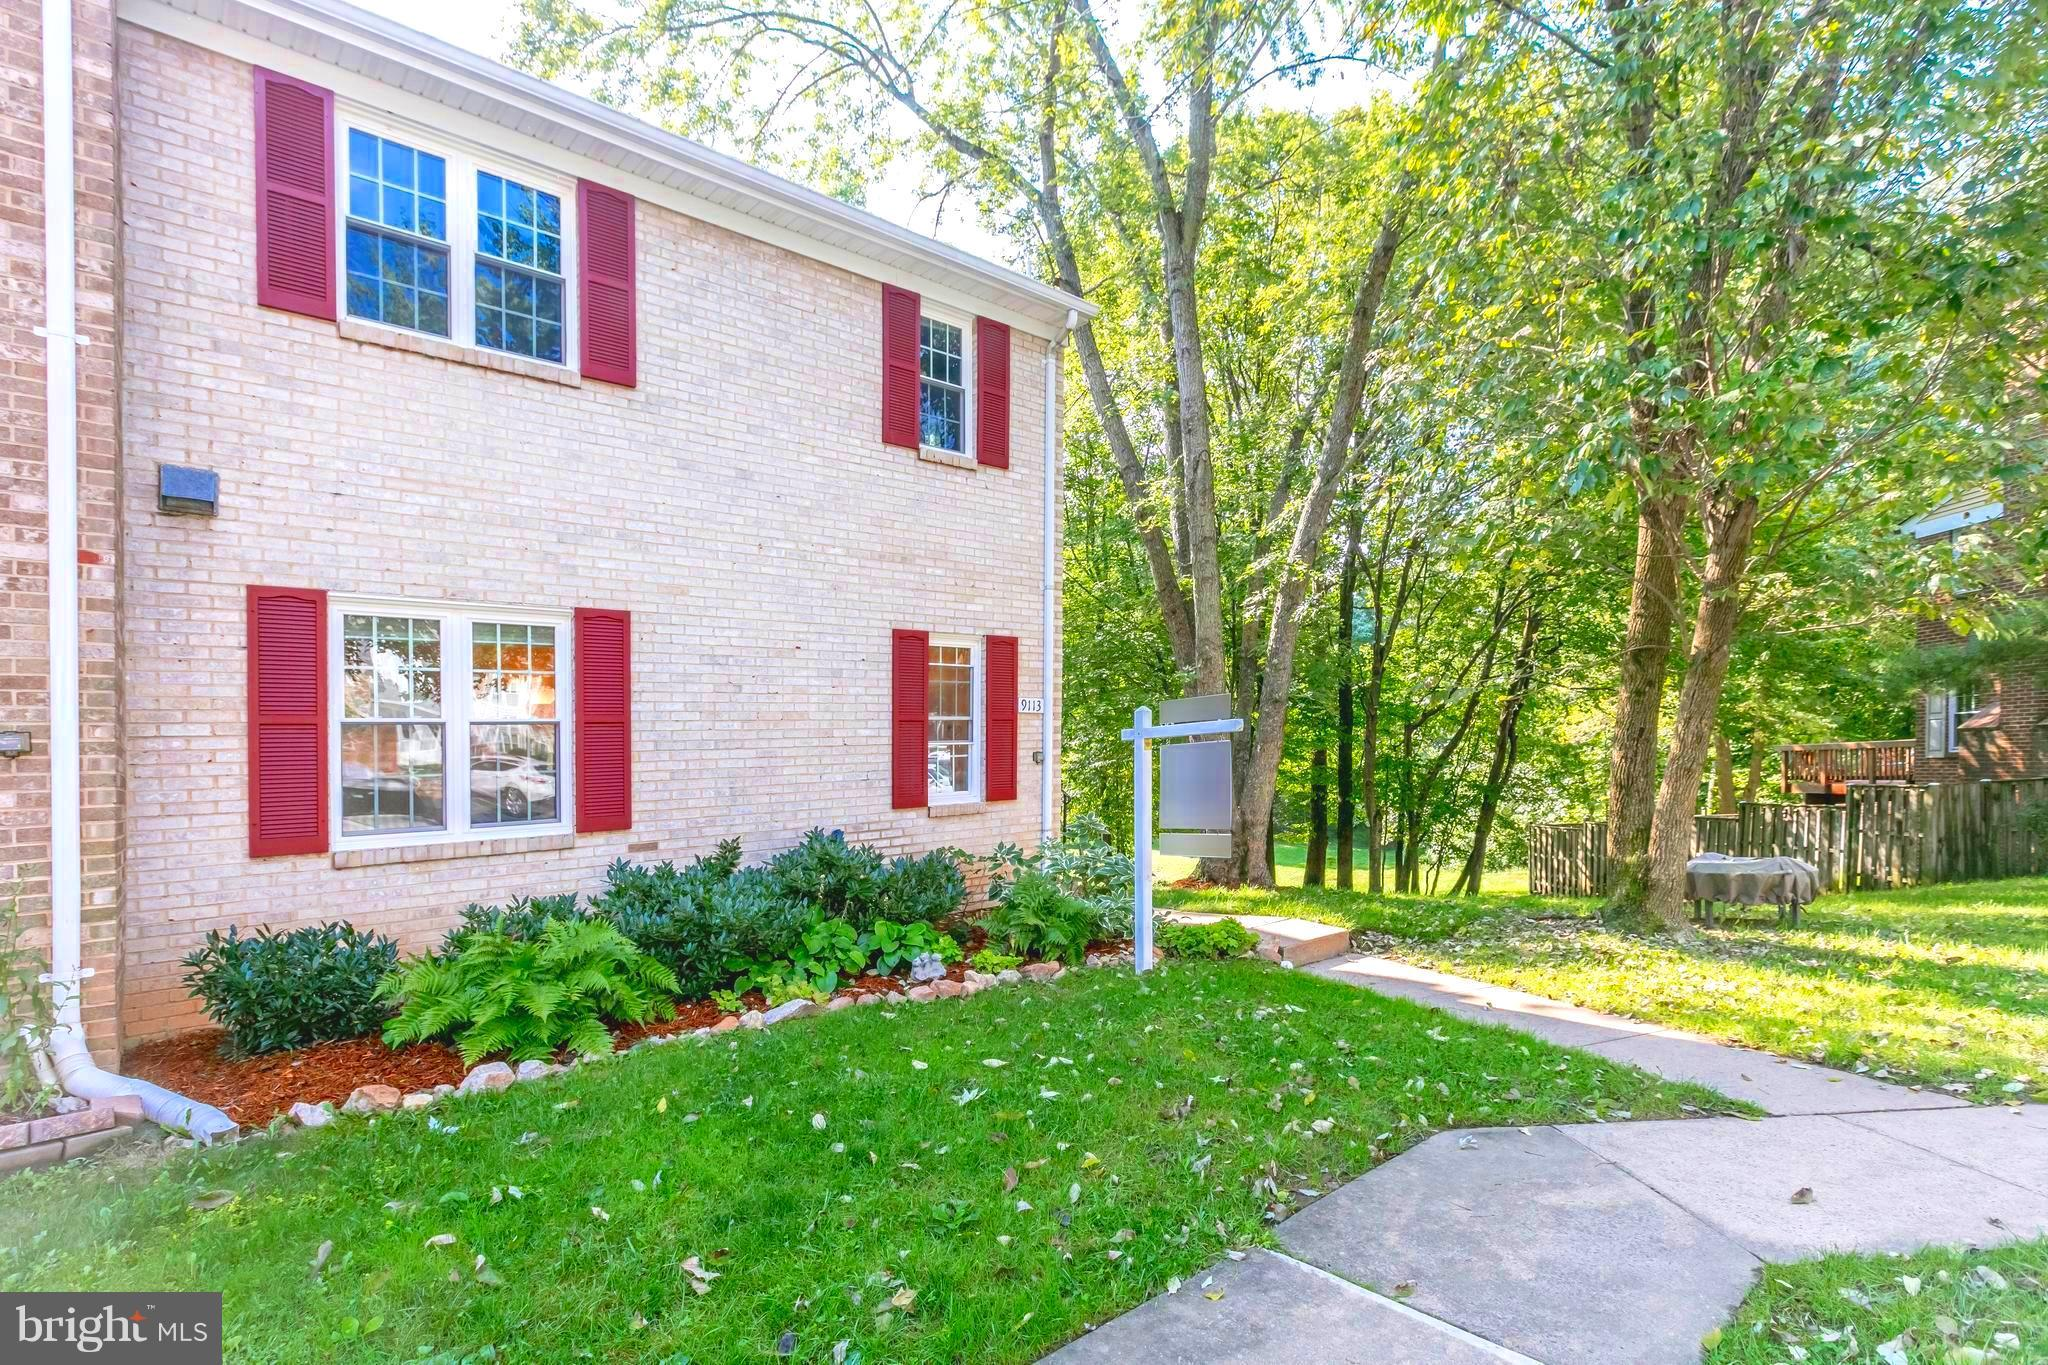 Stunning 3 LVL TH w/handcrafted cabinets, gourmet appliances, granite countertops, refinished hrdwds, newly painted, double pane windows, slider & doors, Air Handler 2018, H20 Heater '17! 3 bedrms up, 1 bed/office on Main LVL & gorgeous bath renos! W-out LL w/WB fireplace & huge family Rm! Fenced! Huge open green space w/walking path to Huntsman Lake! German Immersion schools...mins to Starbucks!